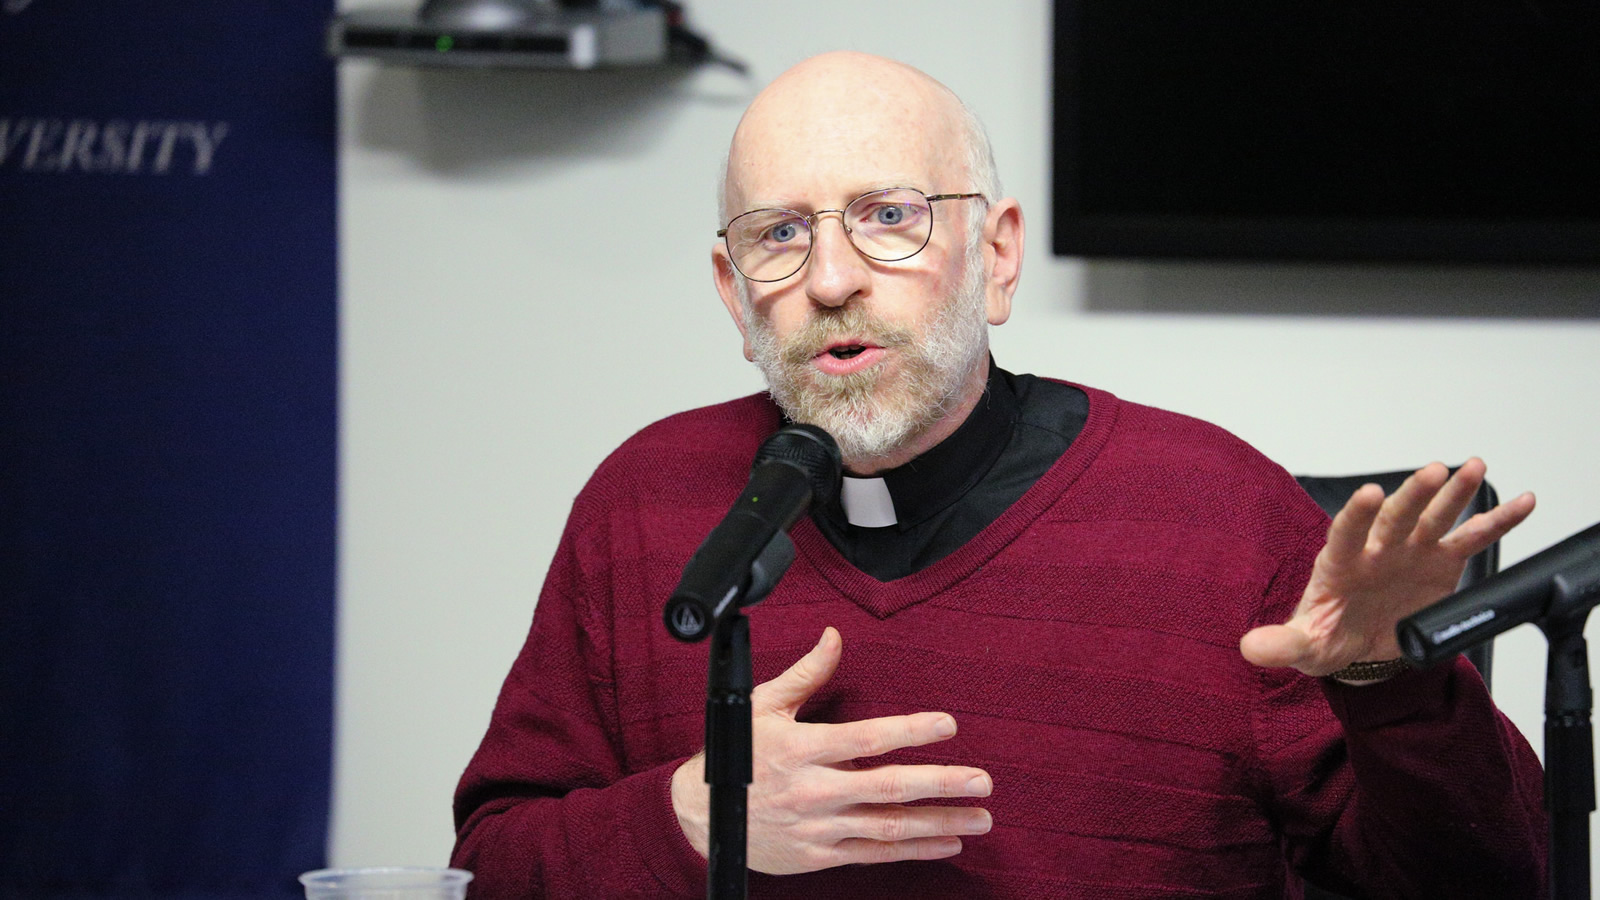 Rev. Thomas Massaro, S.J., discusses the political views of Pope Francis